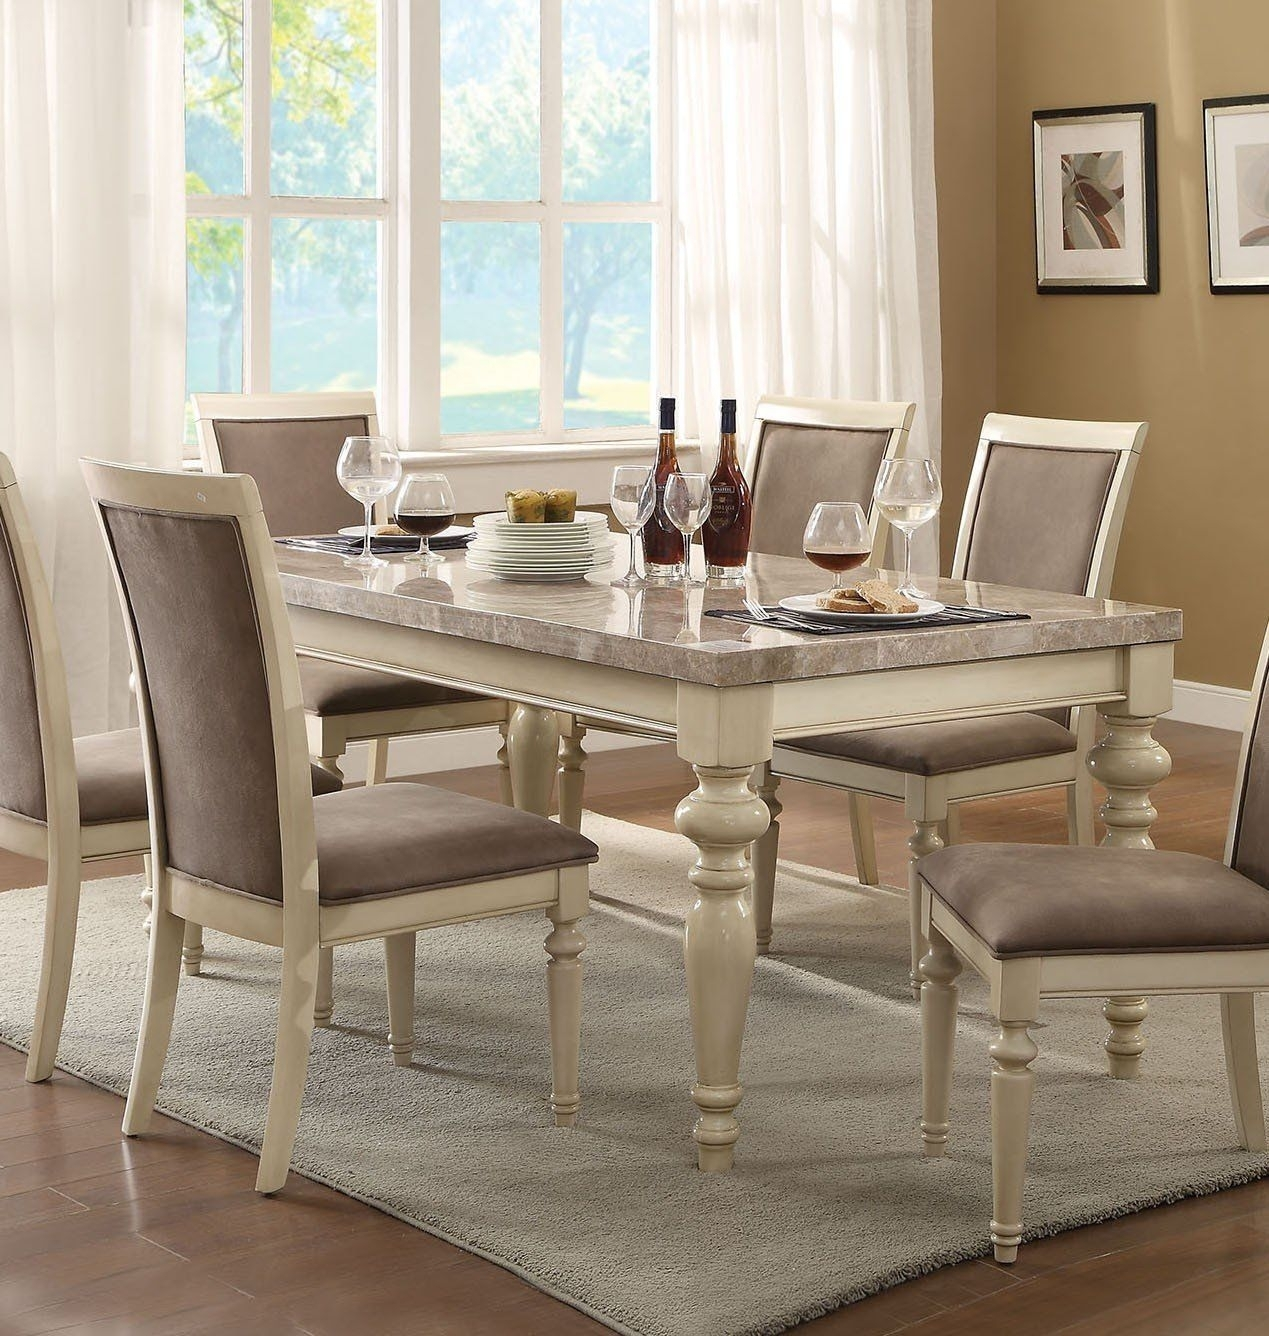 Acme 71705 Ryder Antique White Marble Top Dining Table | Home Regarding Most Up To Date Caira 7 Piece Rectangular Dining Sets With Upholstered Side Chairs (View 18 of 20)